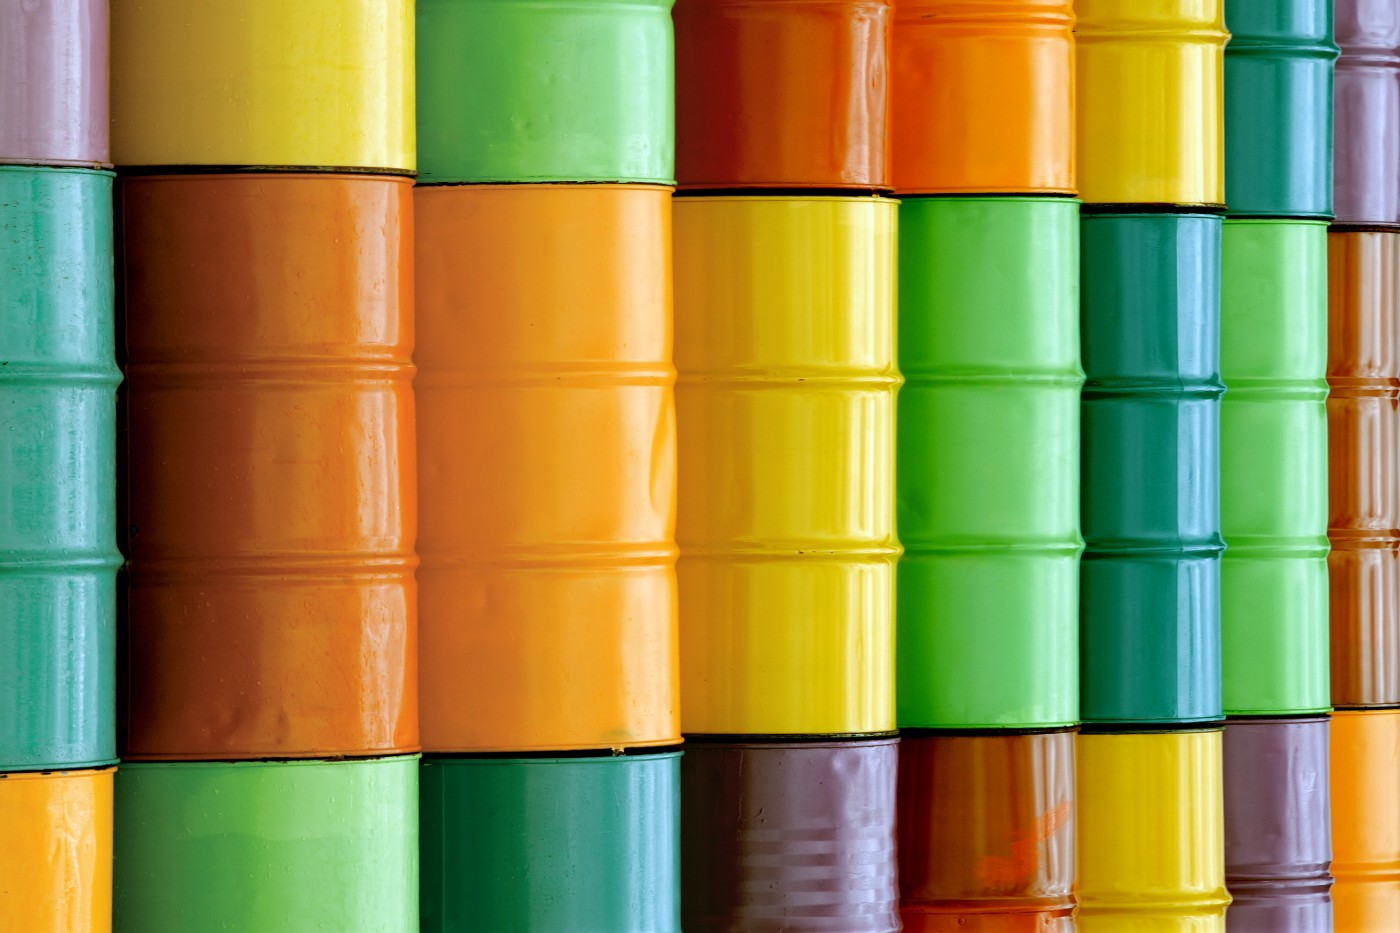 https://tickertapecdn.tdameritrade.com/assets/images/pages/md/colorful oil barrels: trading crude oil futures